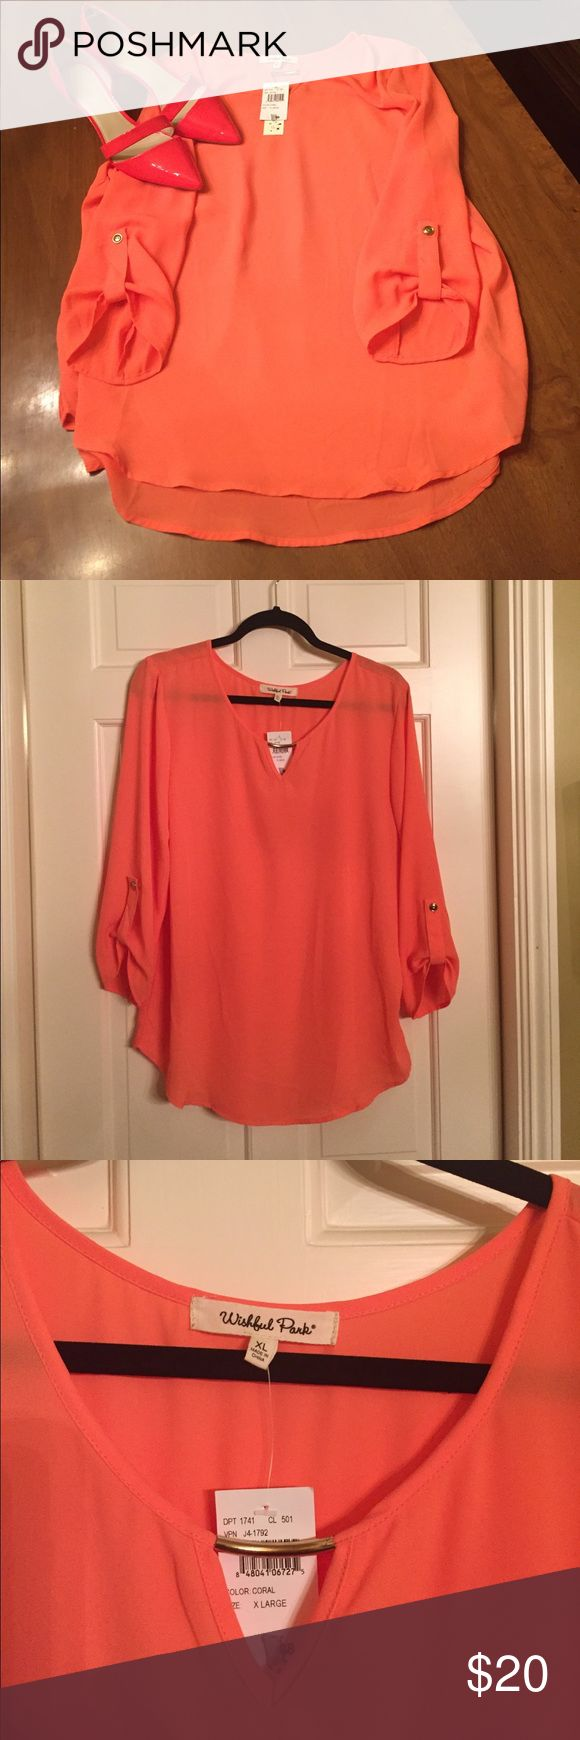 Coral Blouse with 3/4 sleeves Coral blouse that I bought on Poshmark that is a little too snug at hips. Tag says extra large but fits more like a large. Bought coral shoes to go with the shirt. Wishful Park Tops Blouses